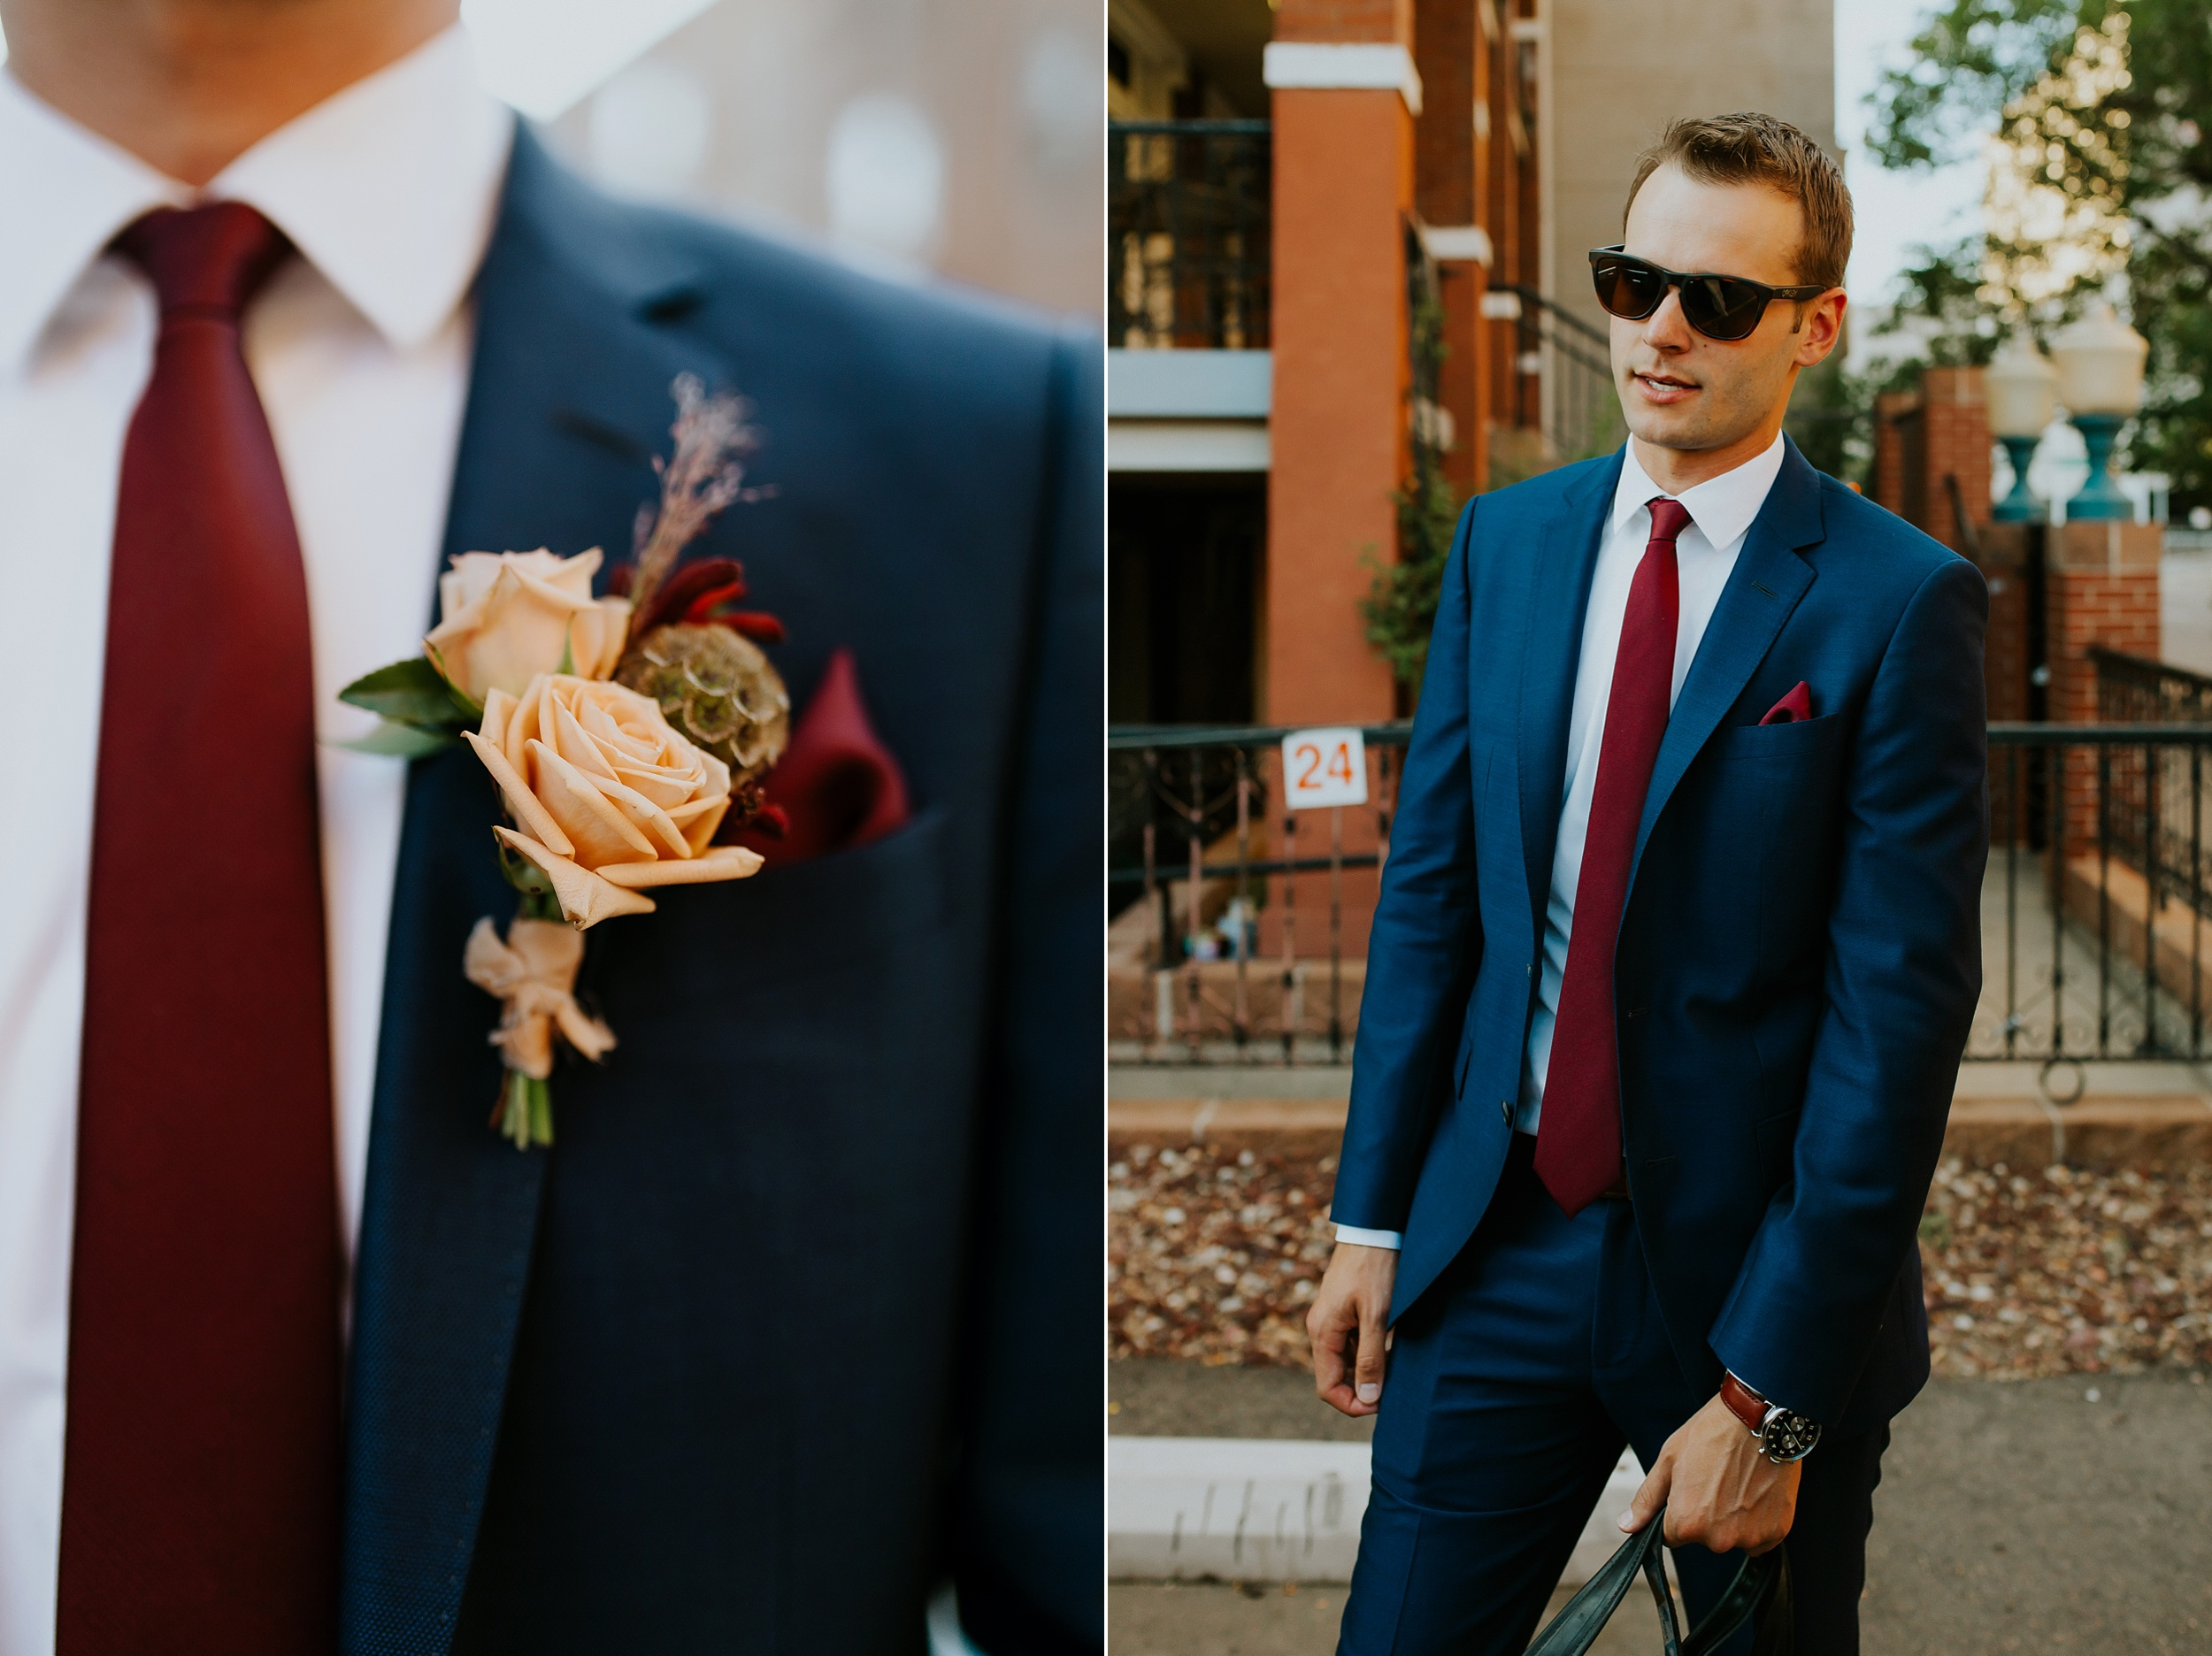 DowntownDenver_Colorado_Elopement_Anniversary_Session_Urban_Edit-17.jpg